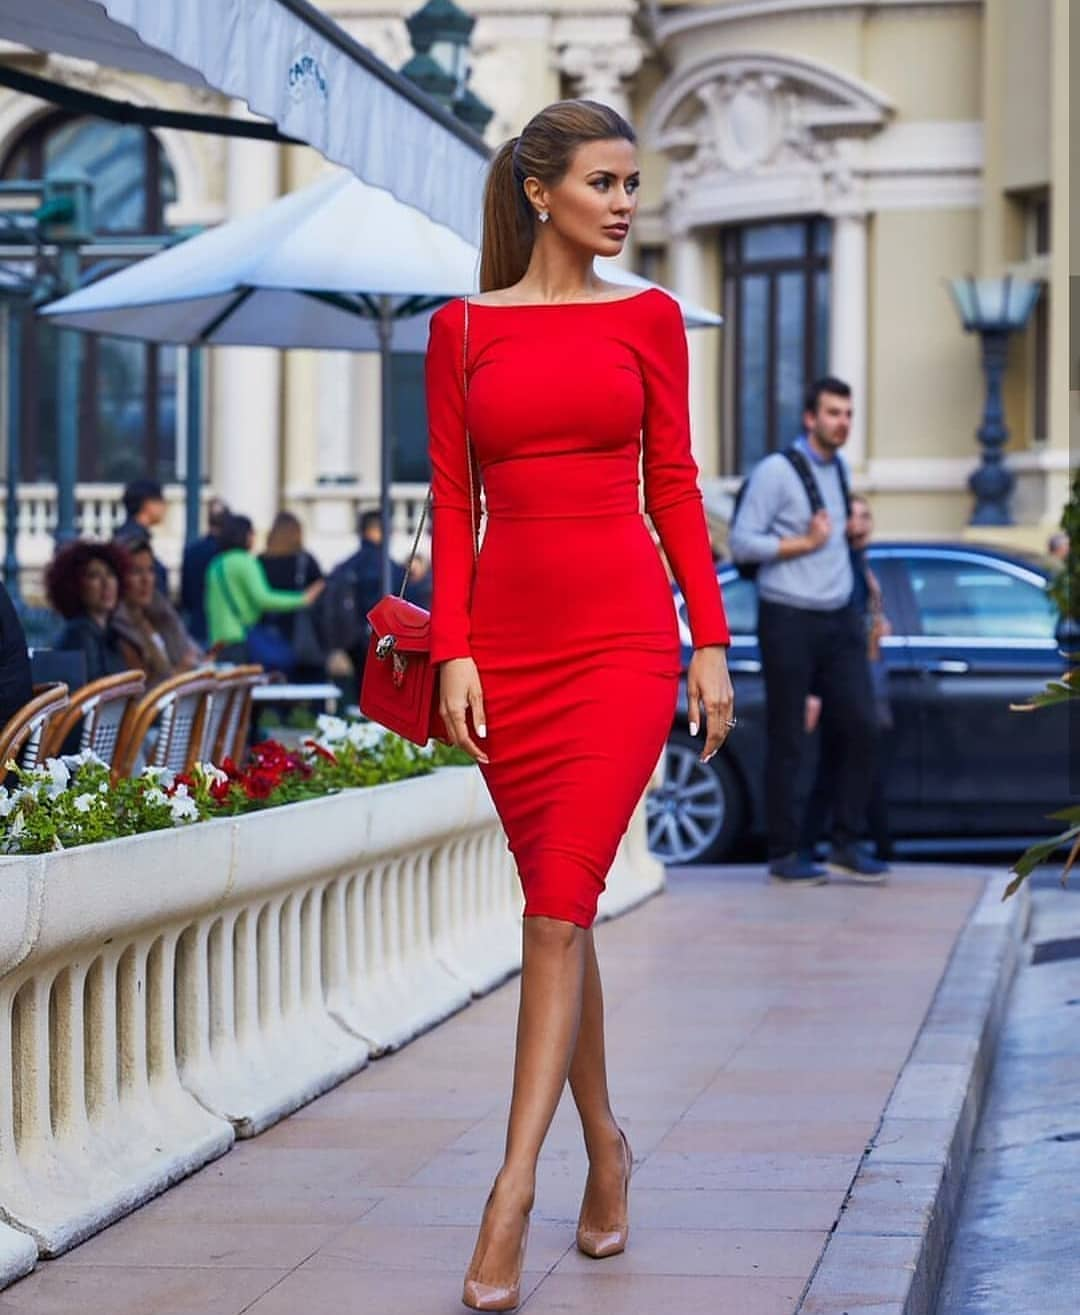 Can I Wear Boatneck Red Pencil Dress This Summer 2019